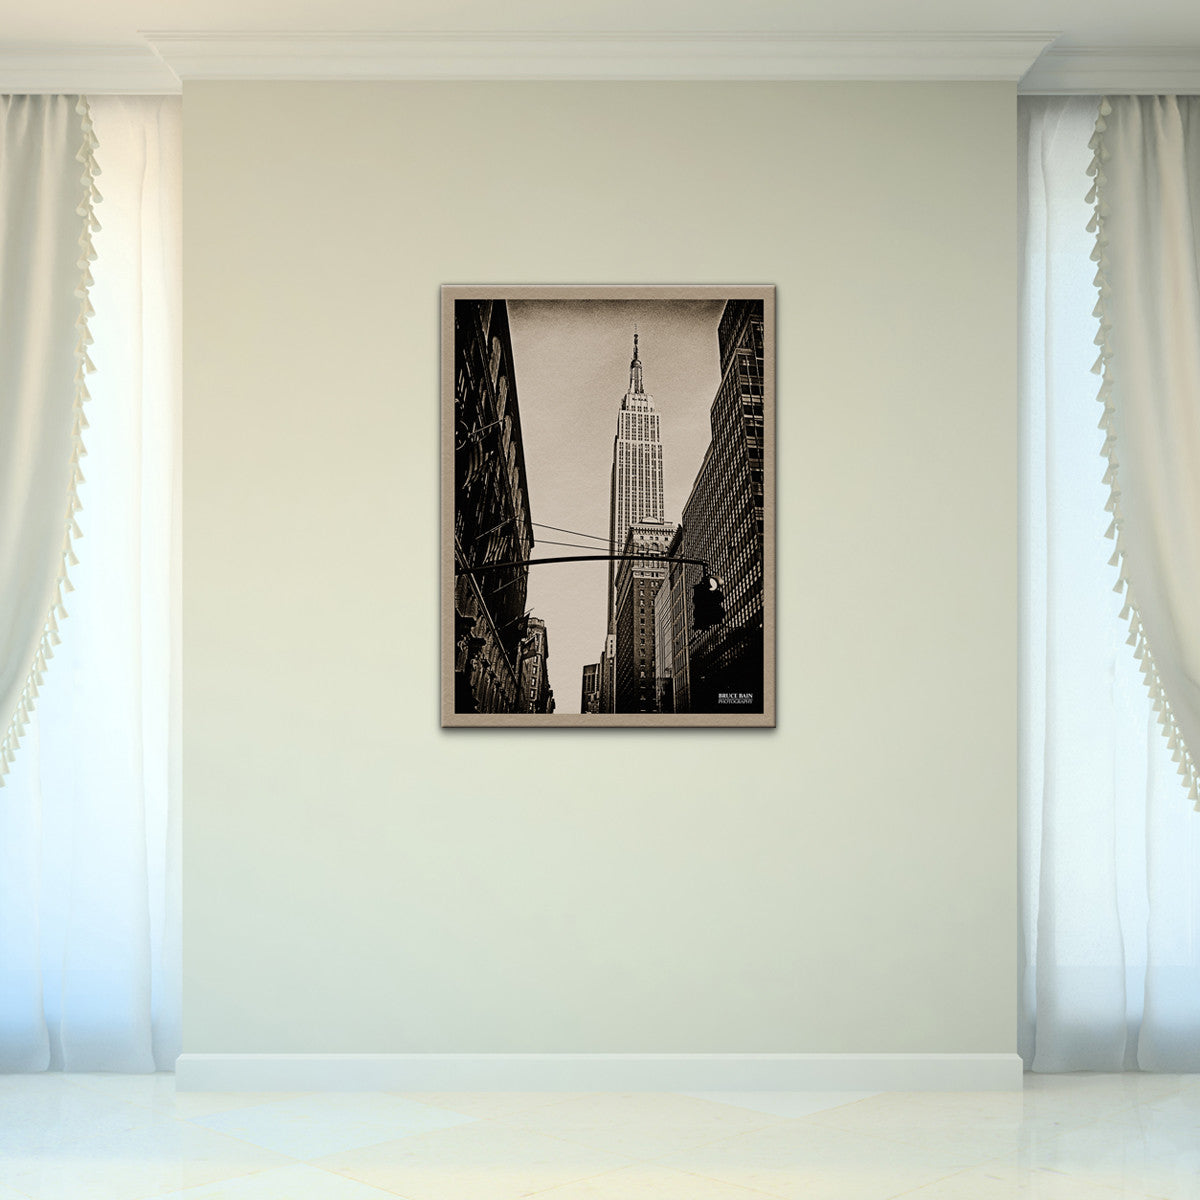 Bruce Bain 'Empire State Building 2' 32x24 inch Canvas Wall Art